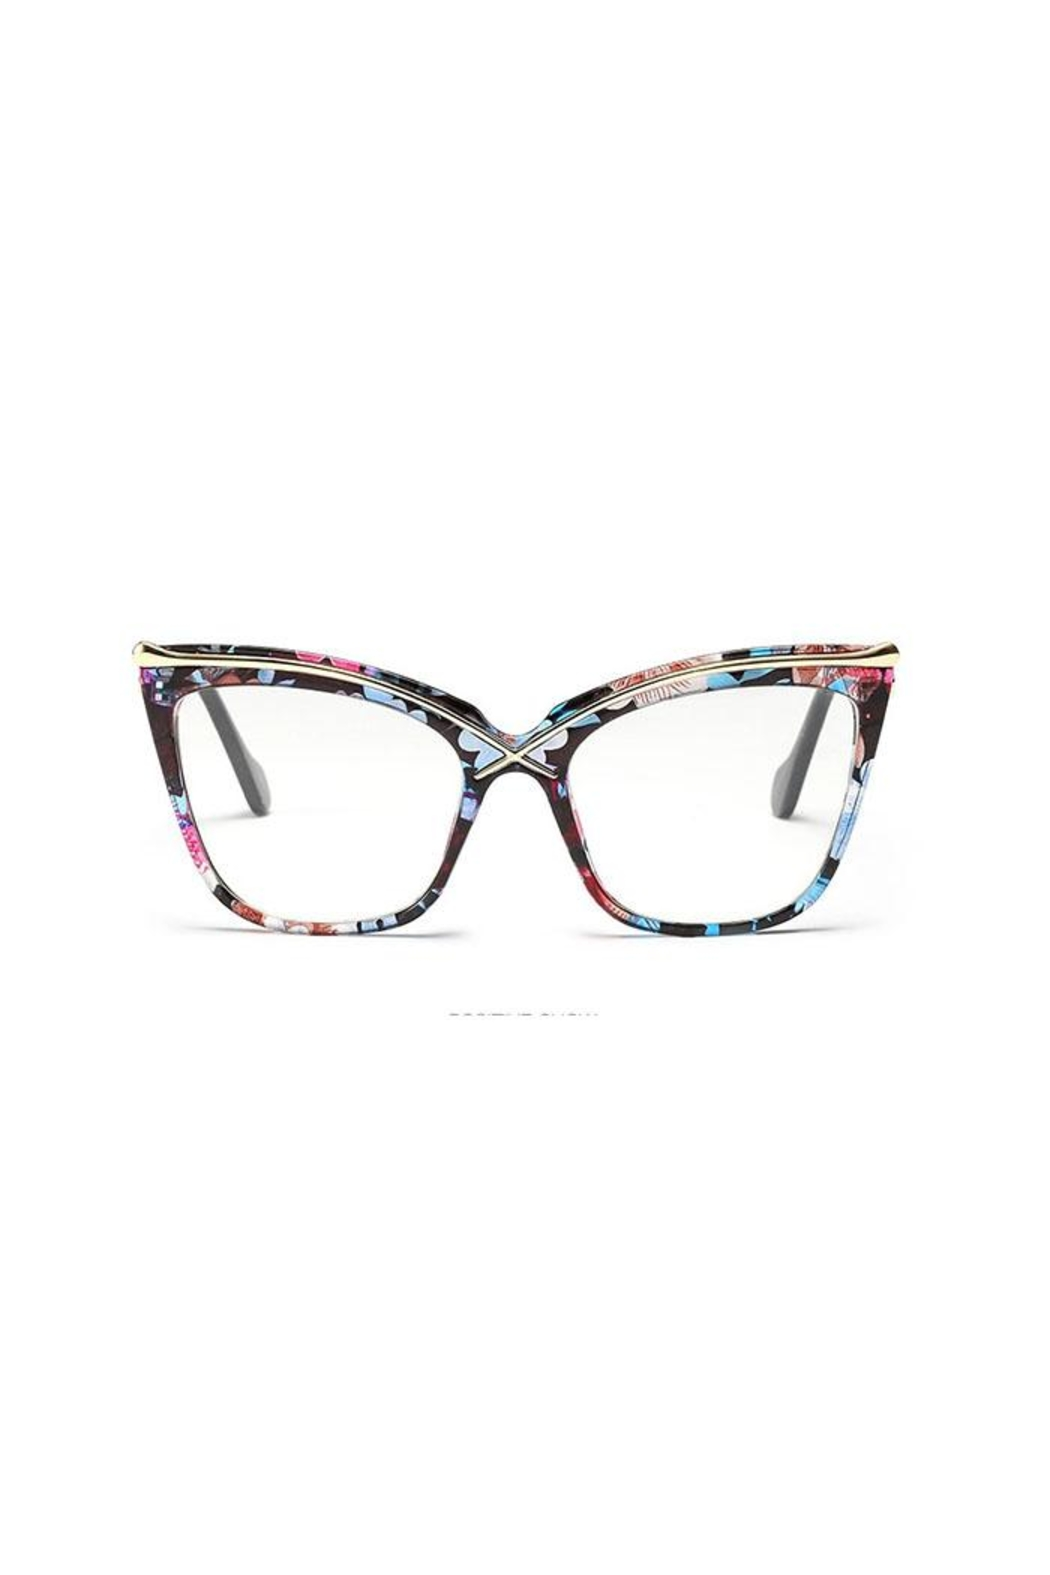 Madison Avenue Accessories Fatima Glasses - Main Image